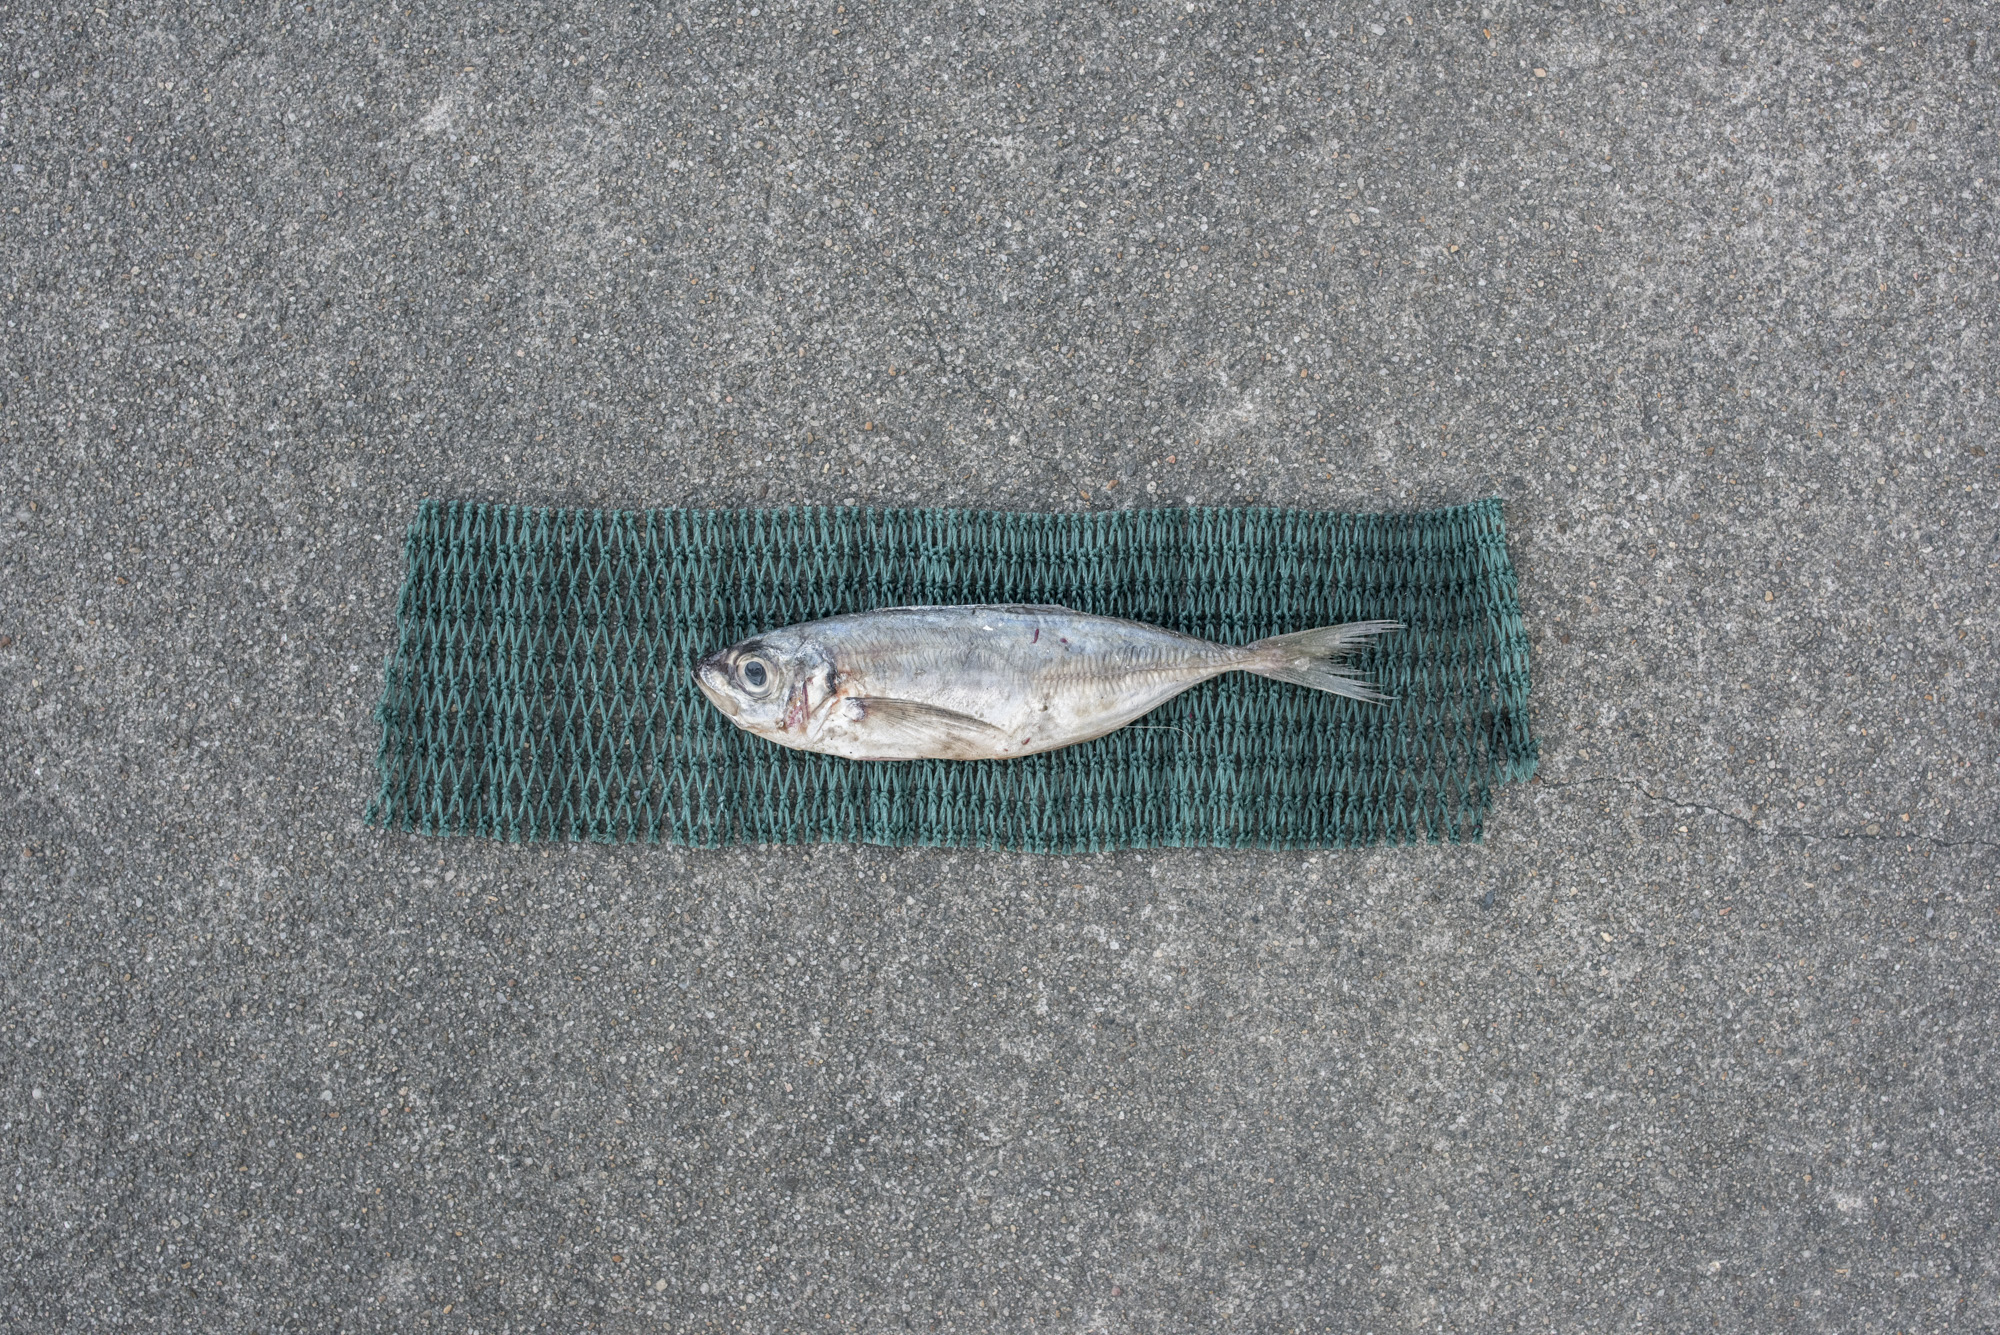 Size of juvenile Japanese scad caught for fish feed(11.4cm) versus size of average adult Japanese scad (15.8cm, as represented by green net below fish)